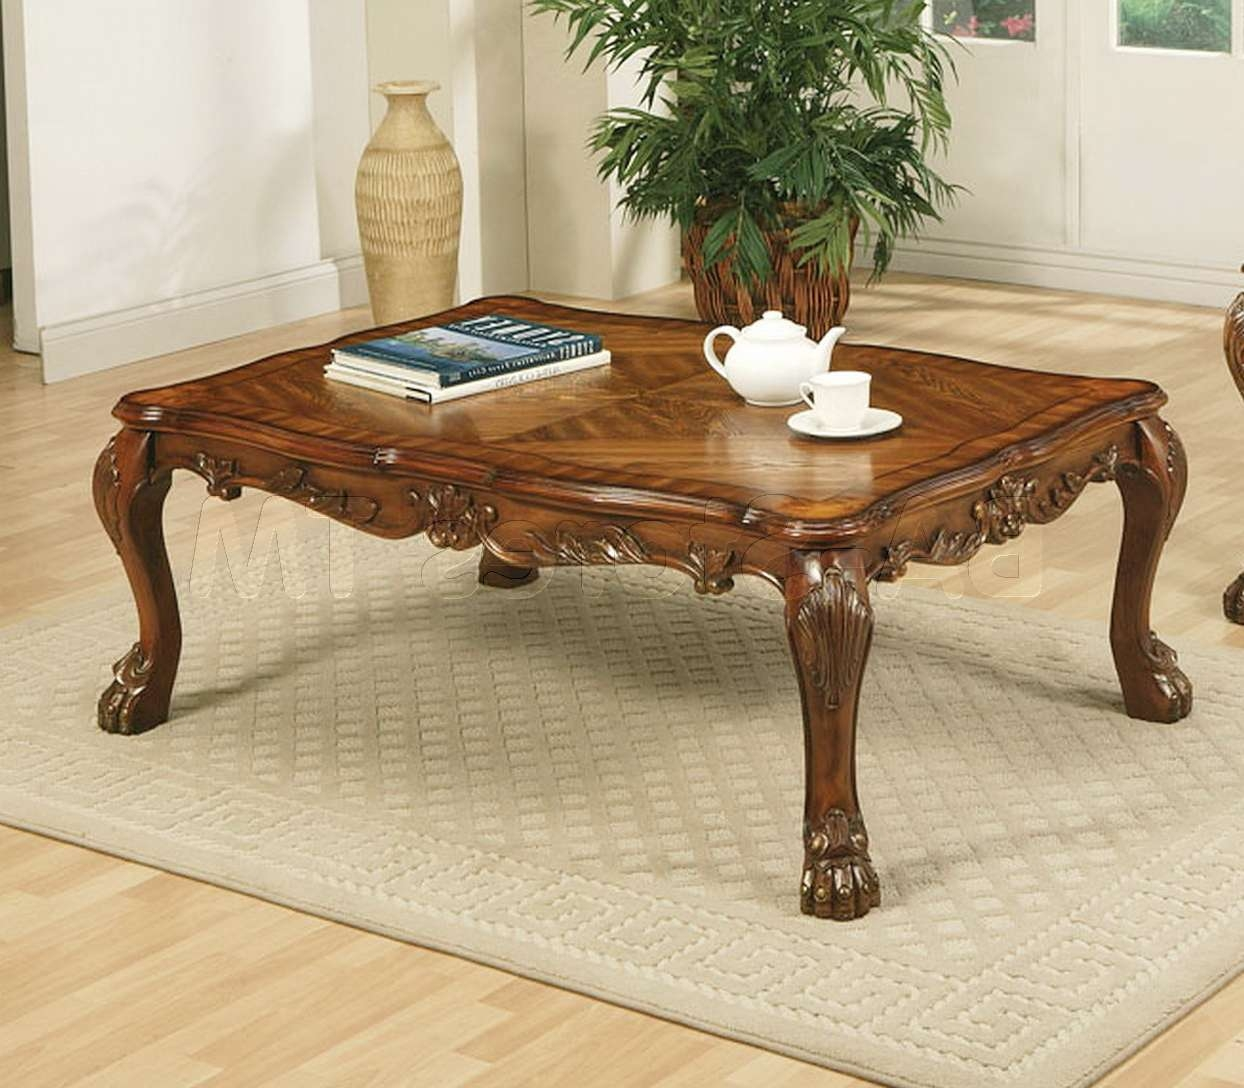 Latest Ethnic Coffee Tables Within Coffee Tables: Glass, Wooden Coffee Table, Free Shipping (View 4 of 20)